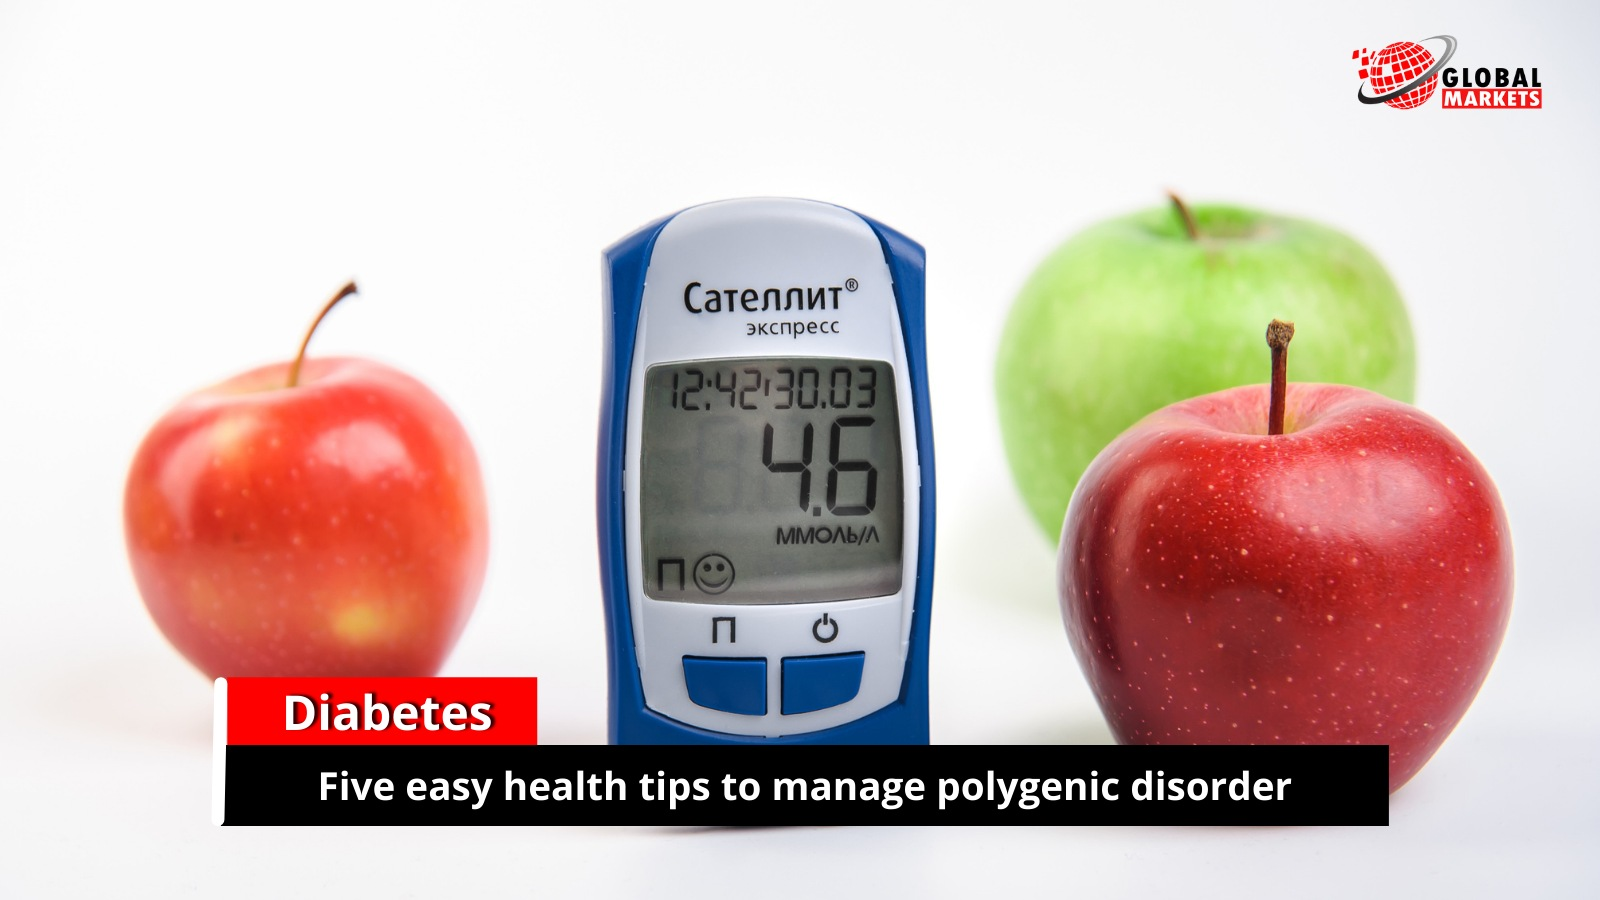 Five easy health tips to manage polygenic disorder